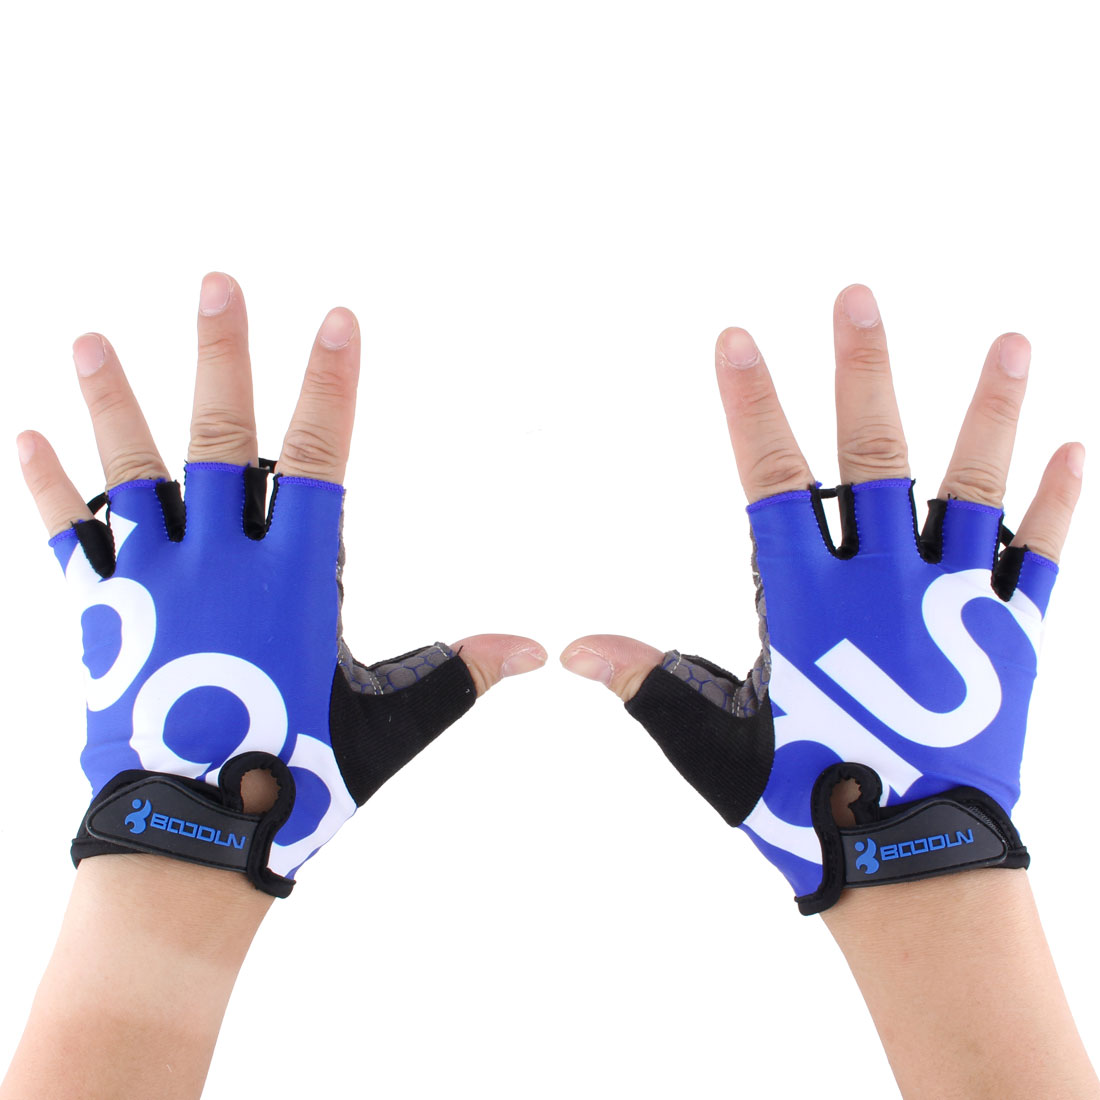 BOODUN Authorized Unisex Outdoor Sports Cycling Biking Exercise Adjustable Fitness Half Finger Gloves Blue M Size Pair